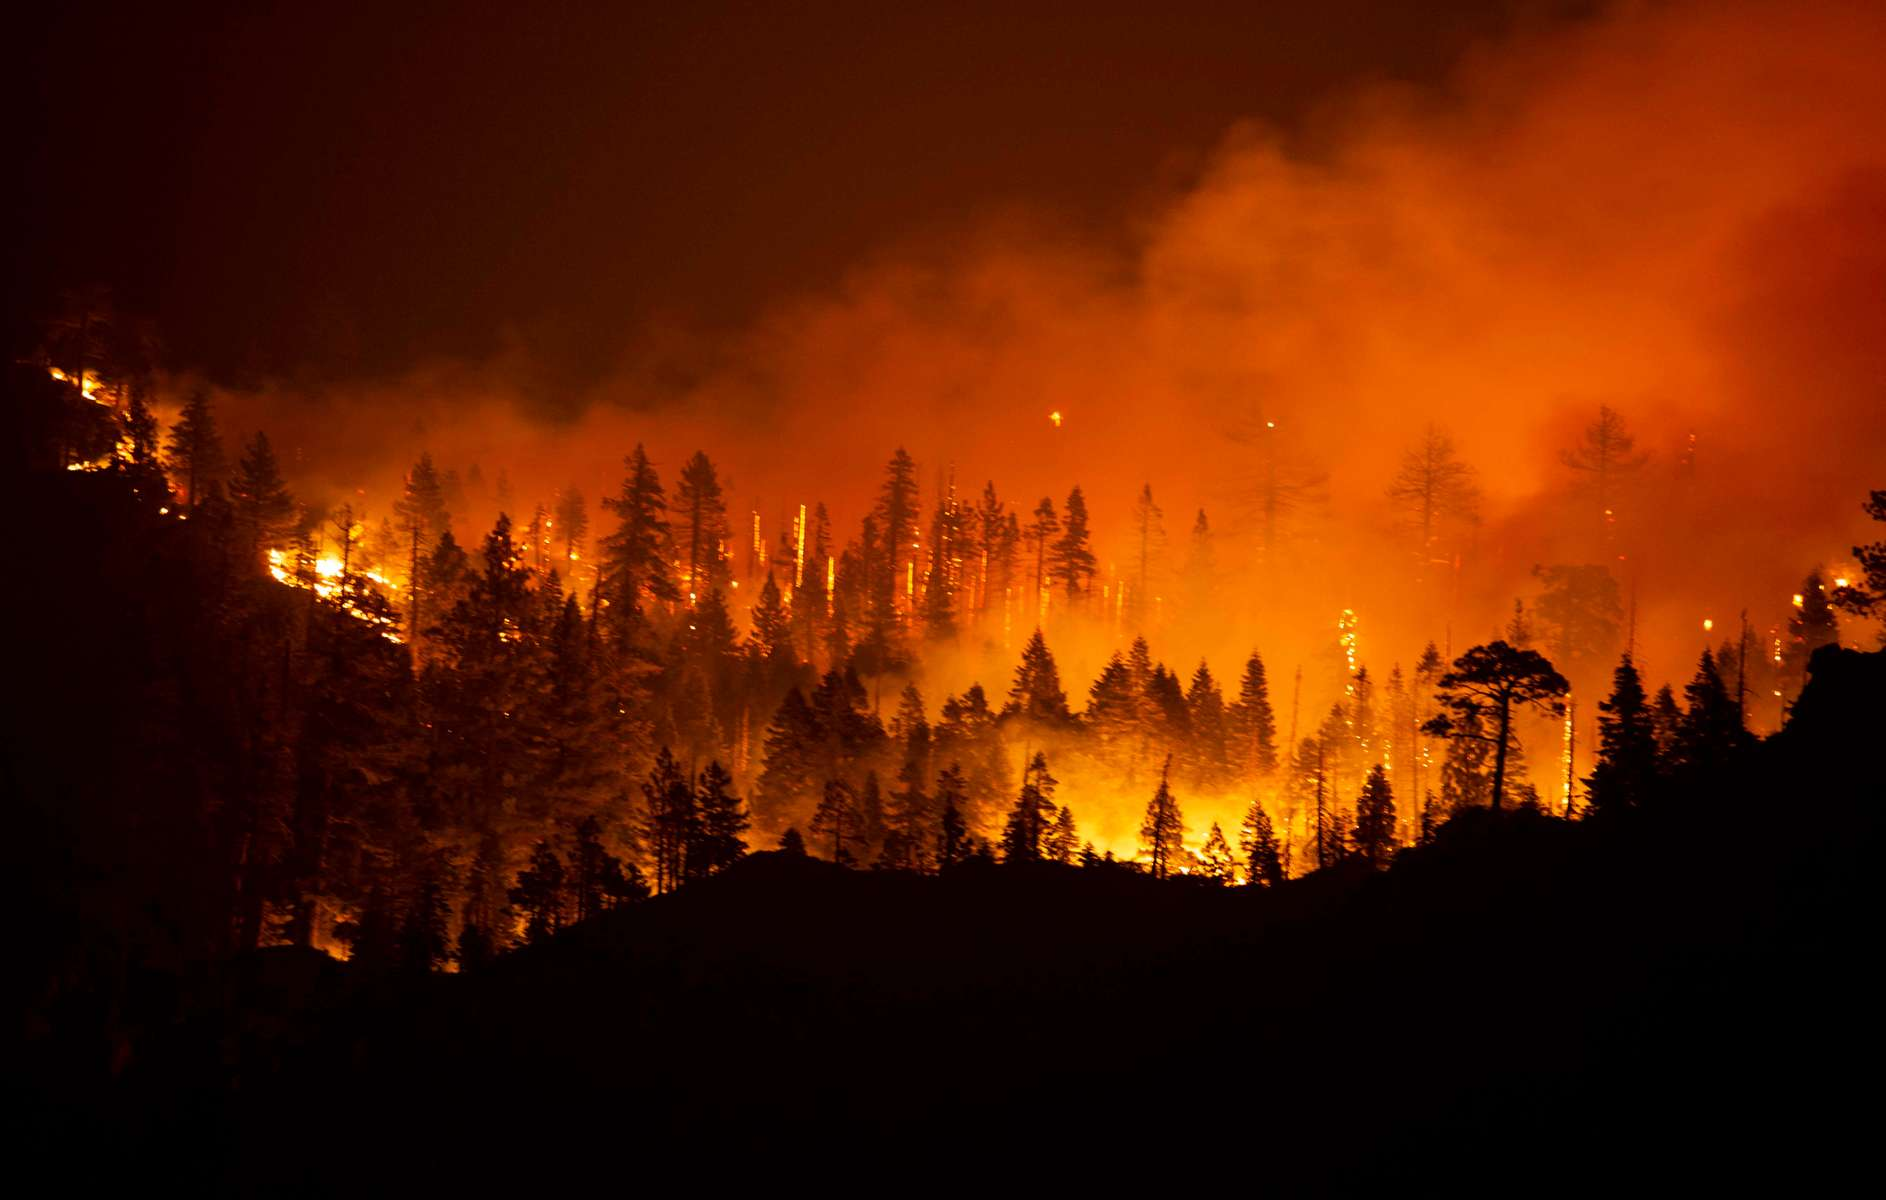 Trees burn as the Caldor fire rages on August 29, 2021, in the Eldorado National forest, California. The Caldor Fire has burned over 165,000 acres, destroyed over 660 structures and is currently 14 percent contained.